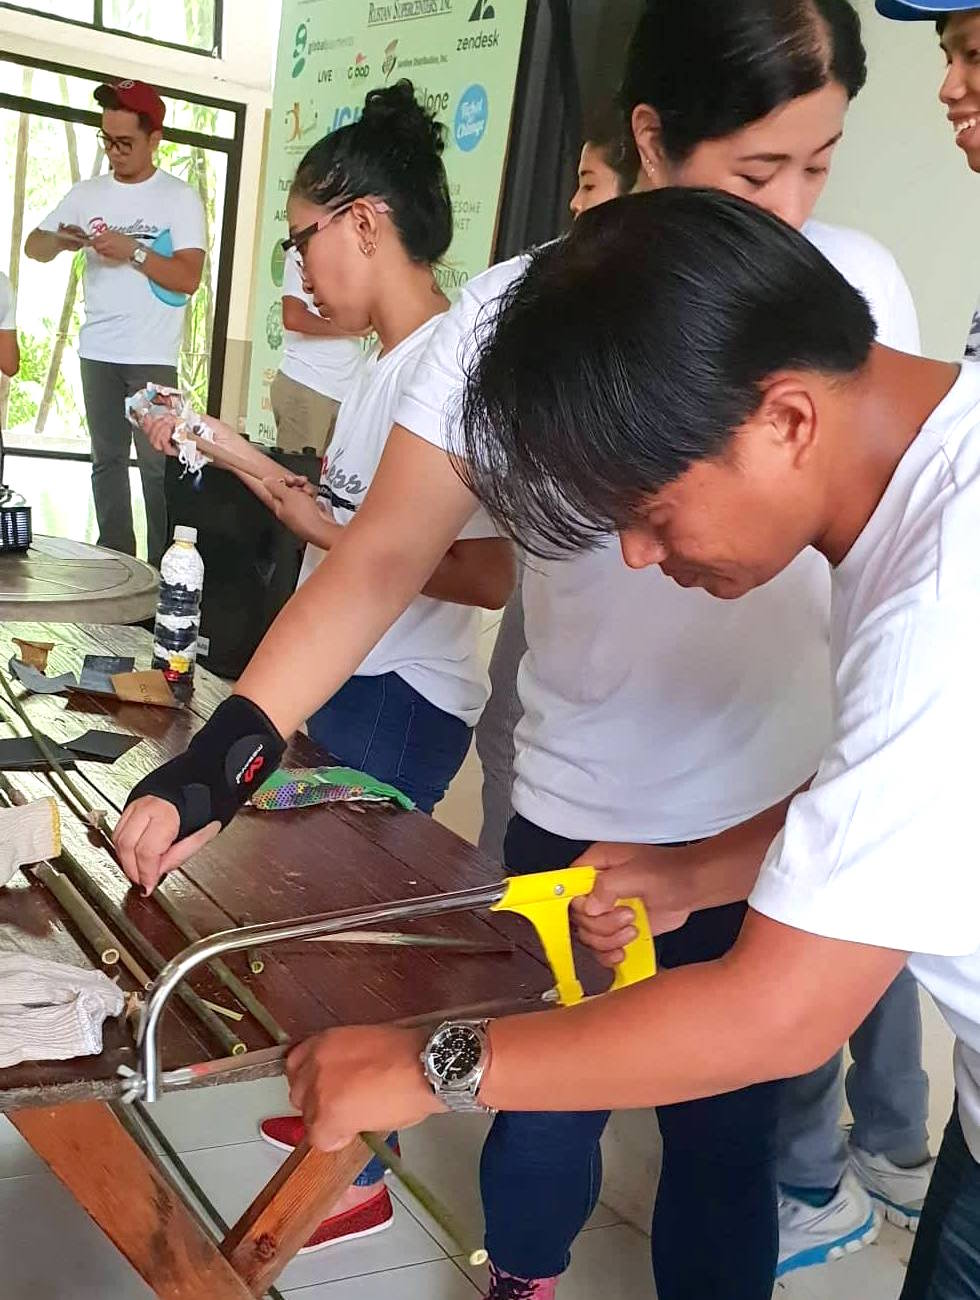 The activity also included a social enterprise demo. The CSR officers had the opportunity to make their own bamboo straws.